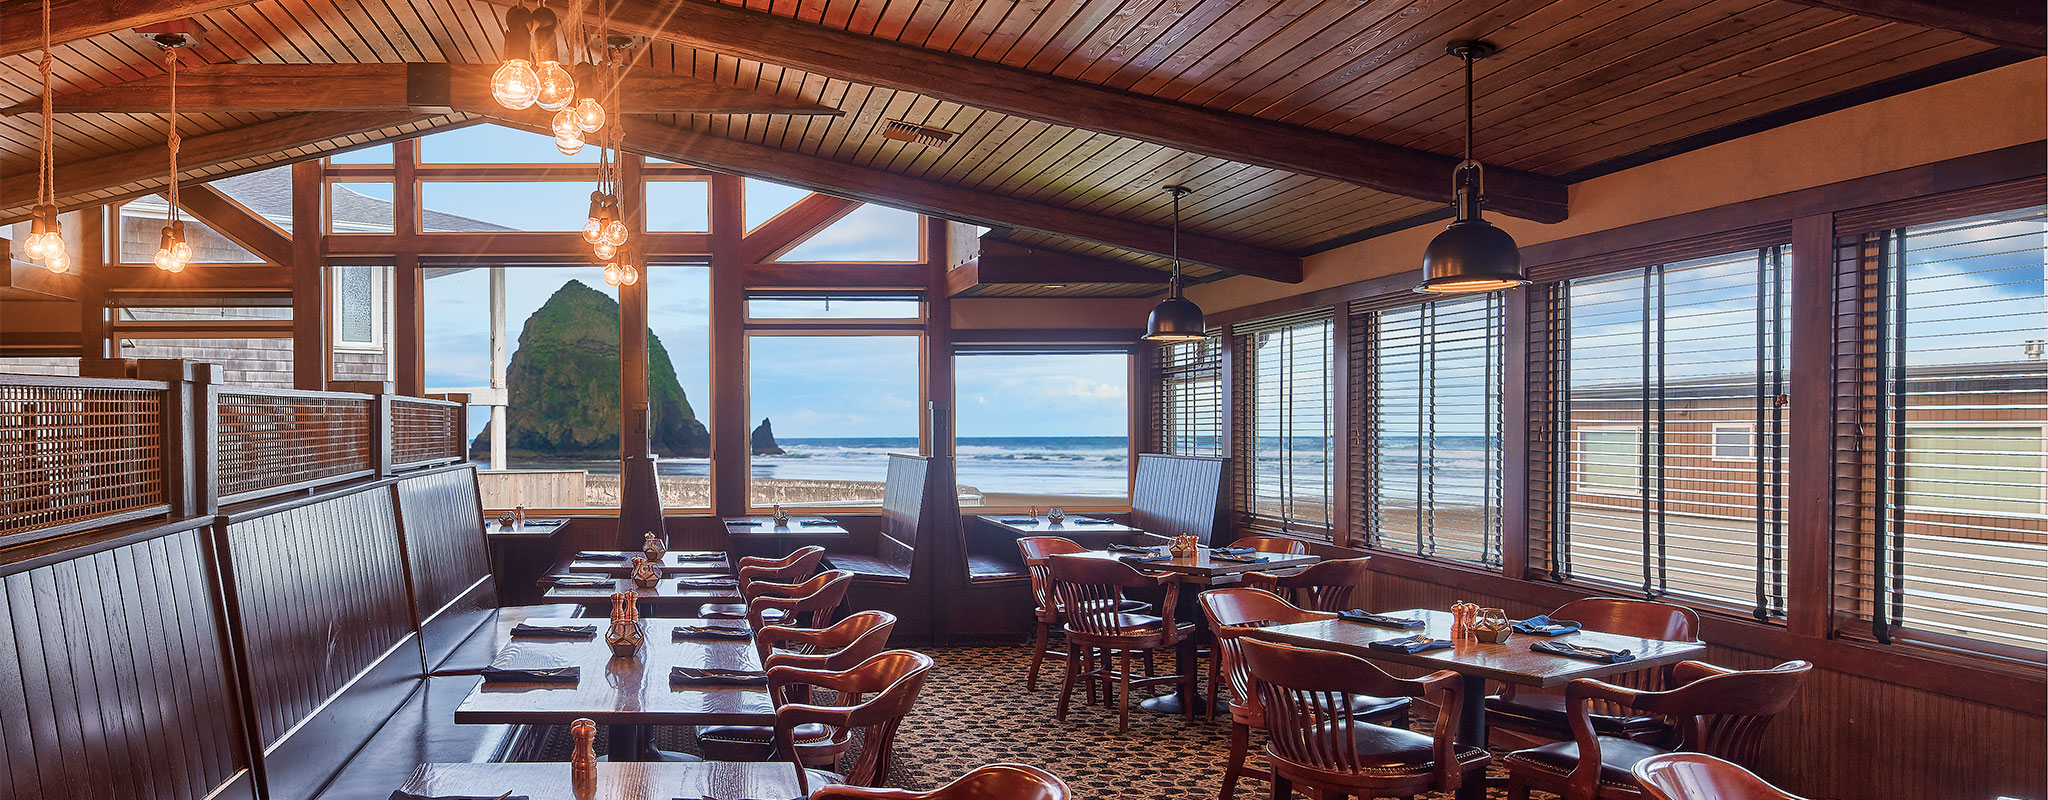 Cannon Beach Restaurant | Wayfarer Restaurant & Lounge